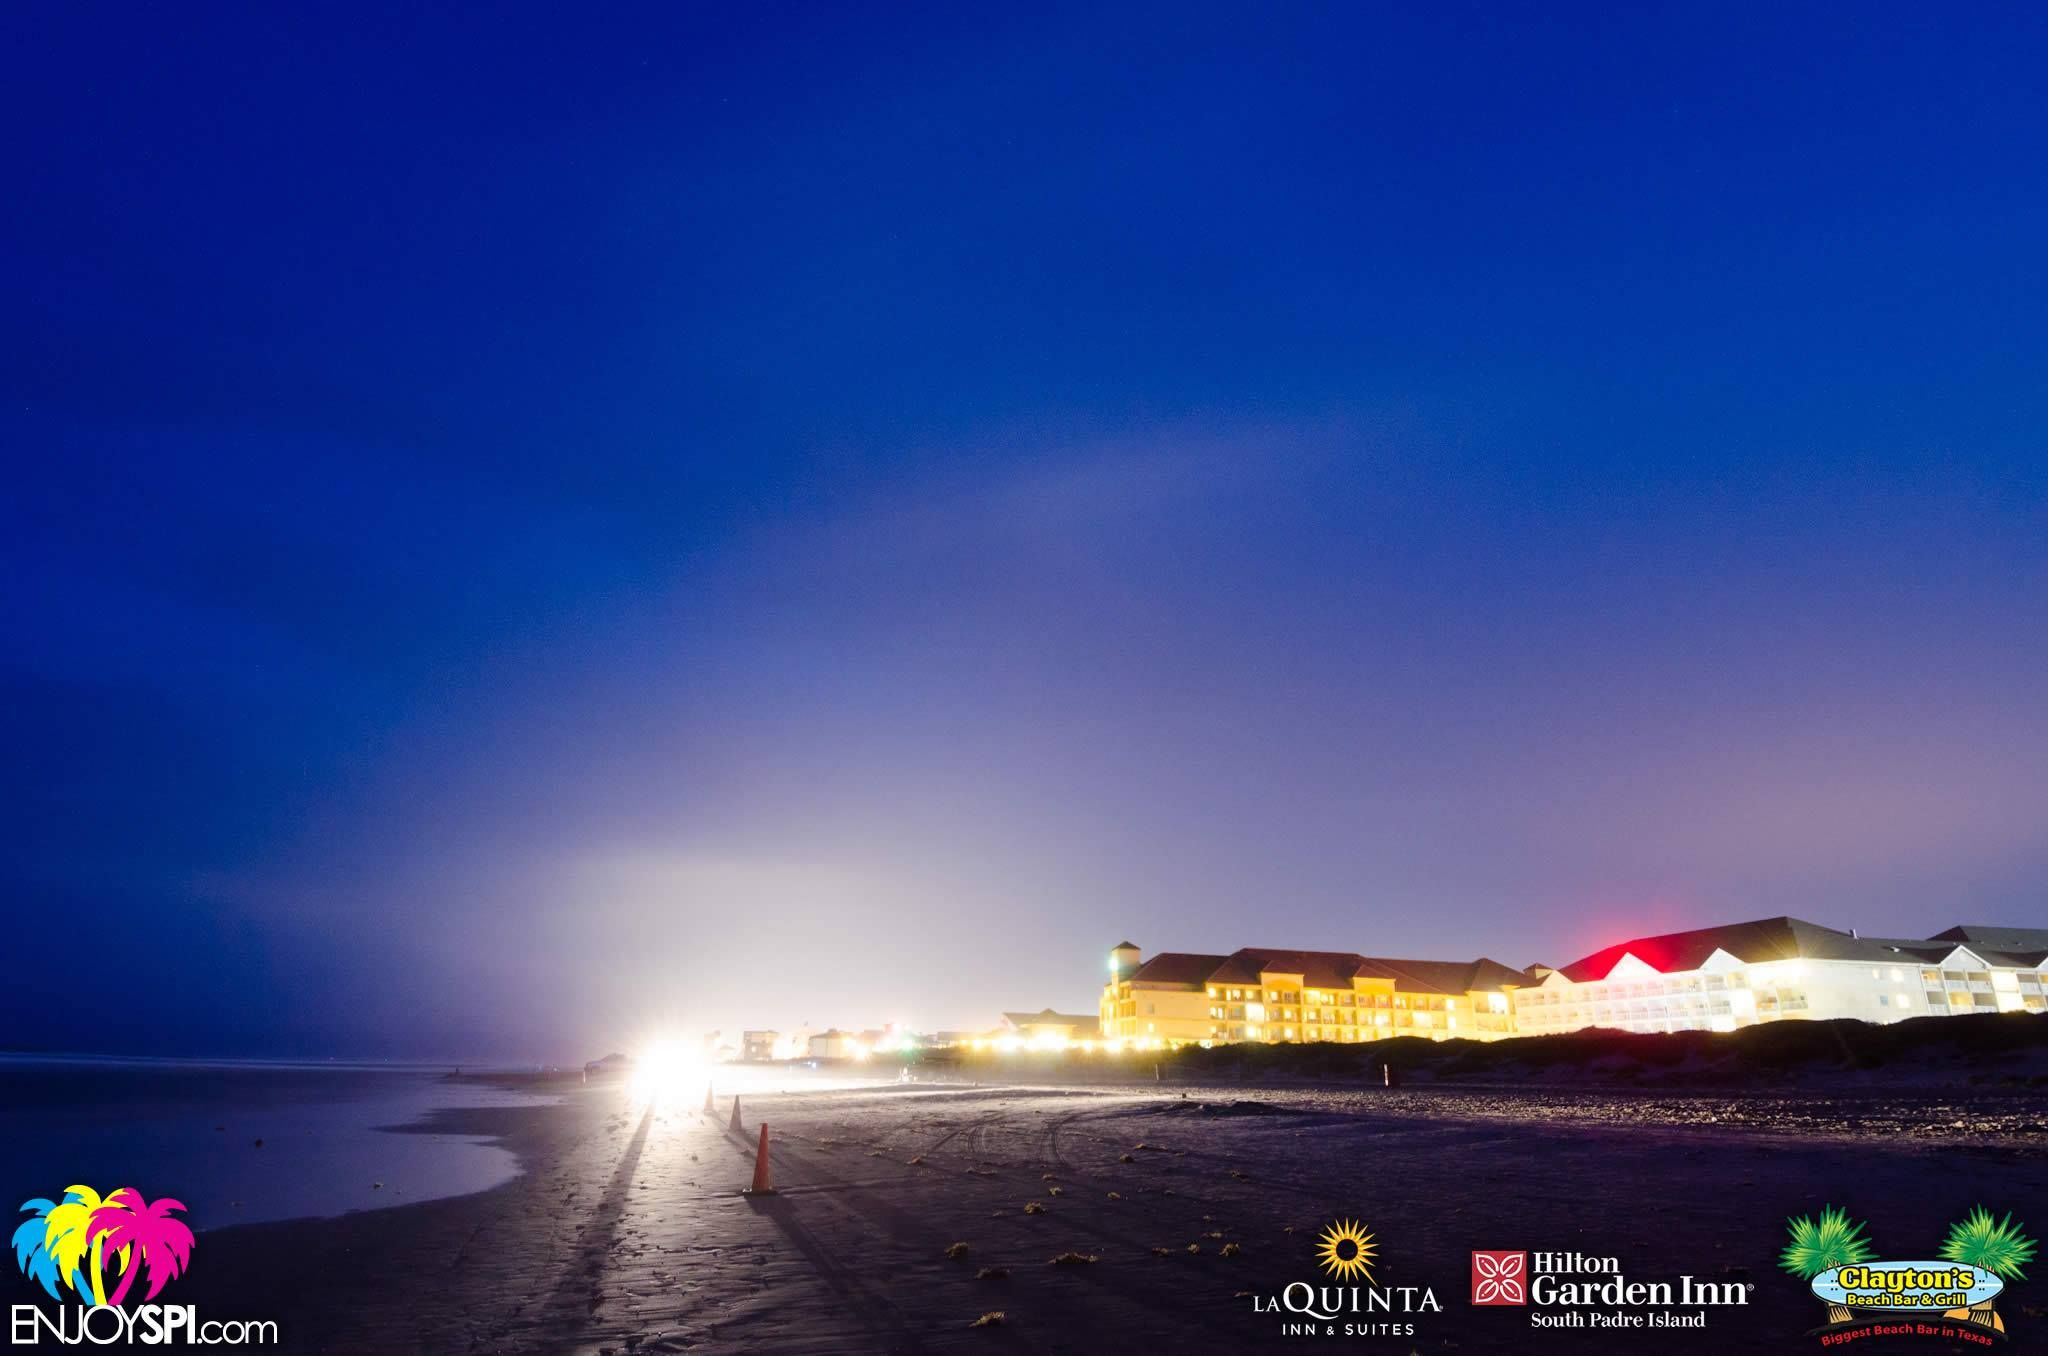 South Padre Island Hotels Events Things To Do Enjoyspi